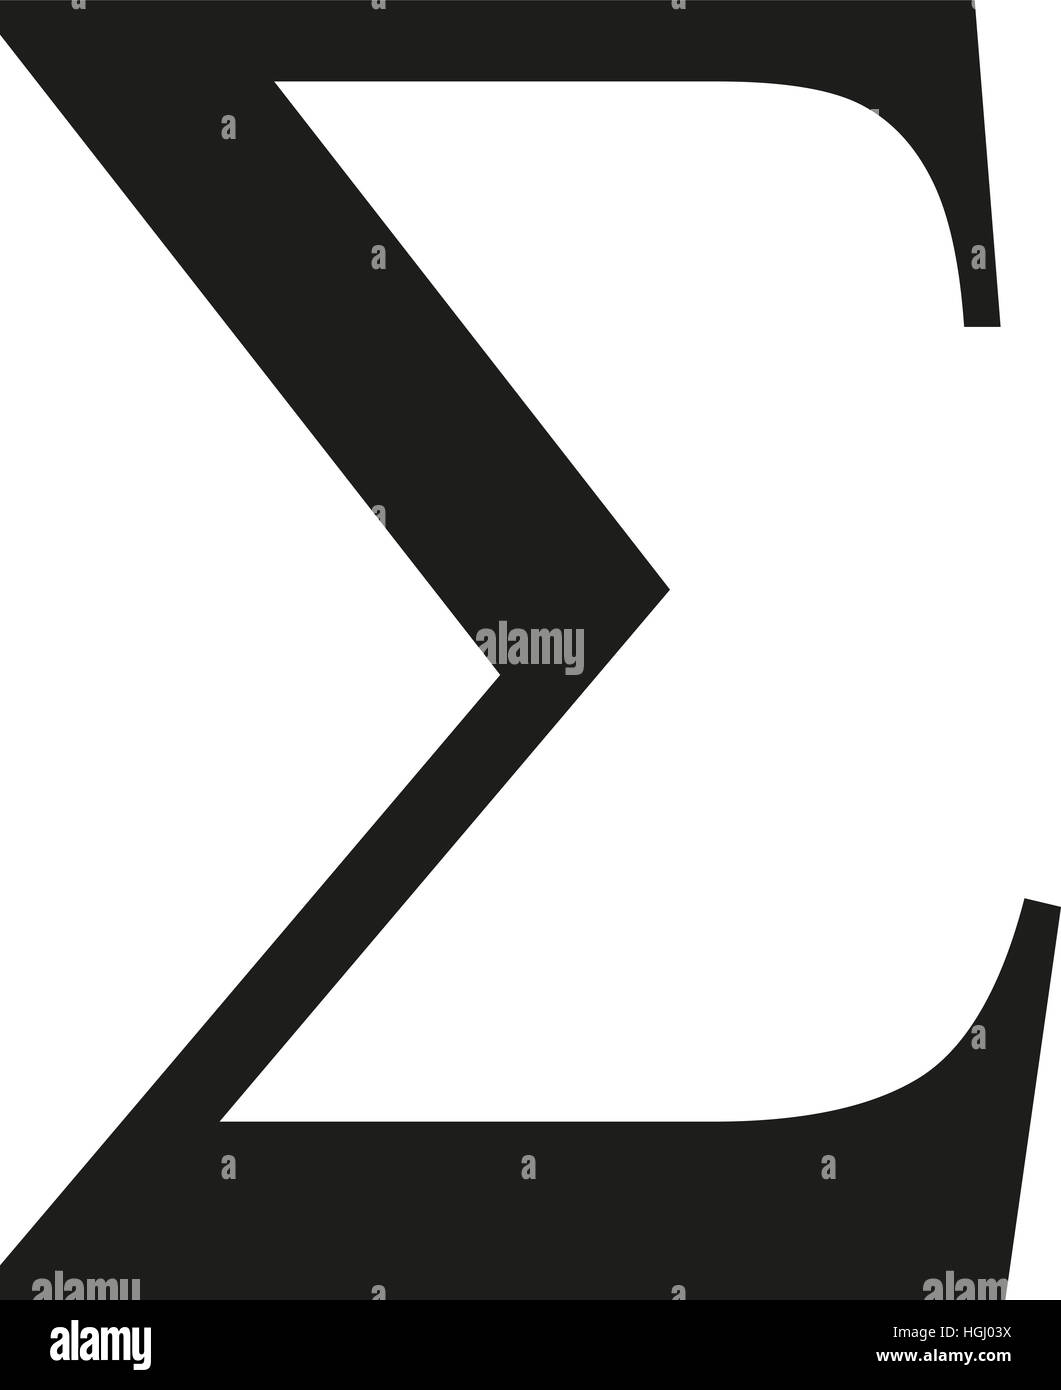 Sigma Symbol Stock Photos Sigma Symbol Stock Images Alamy